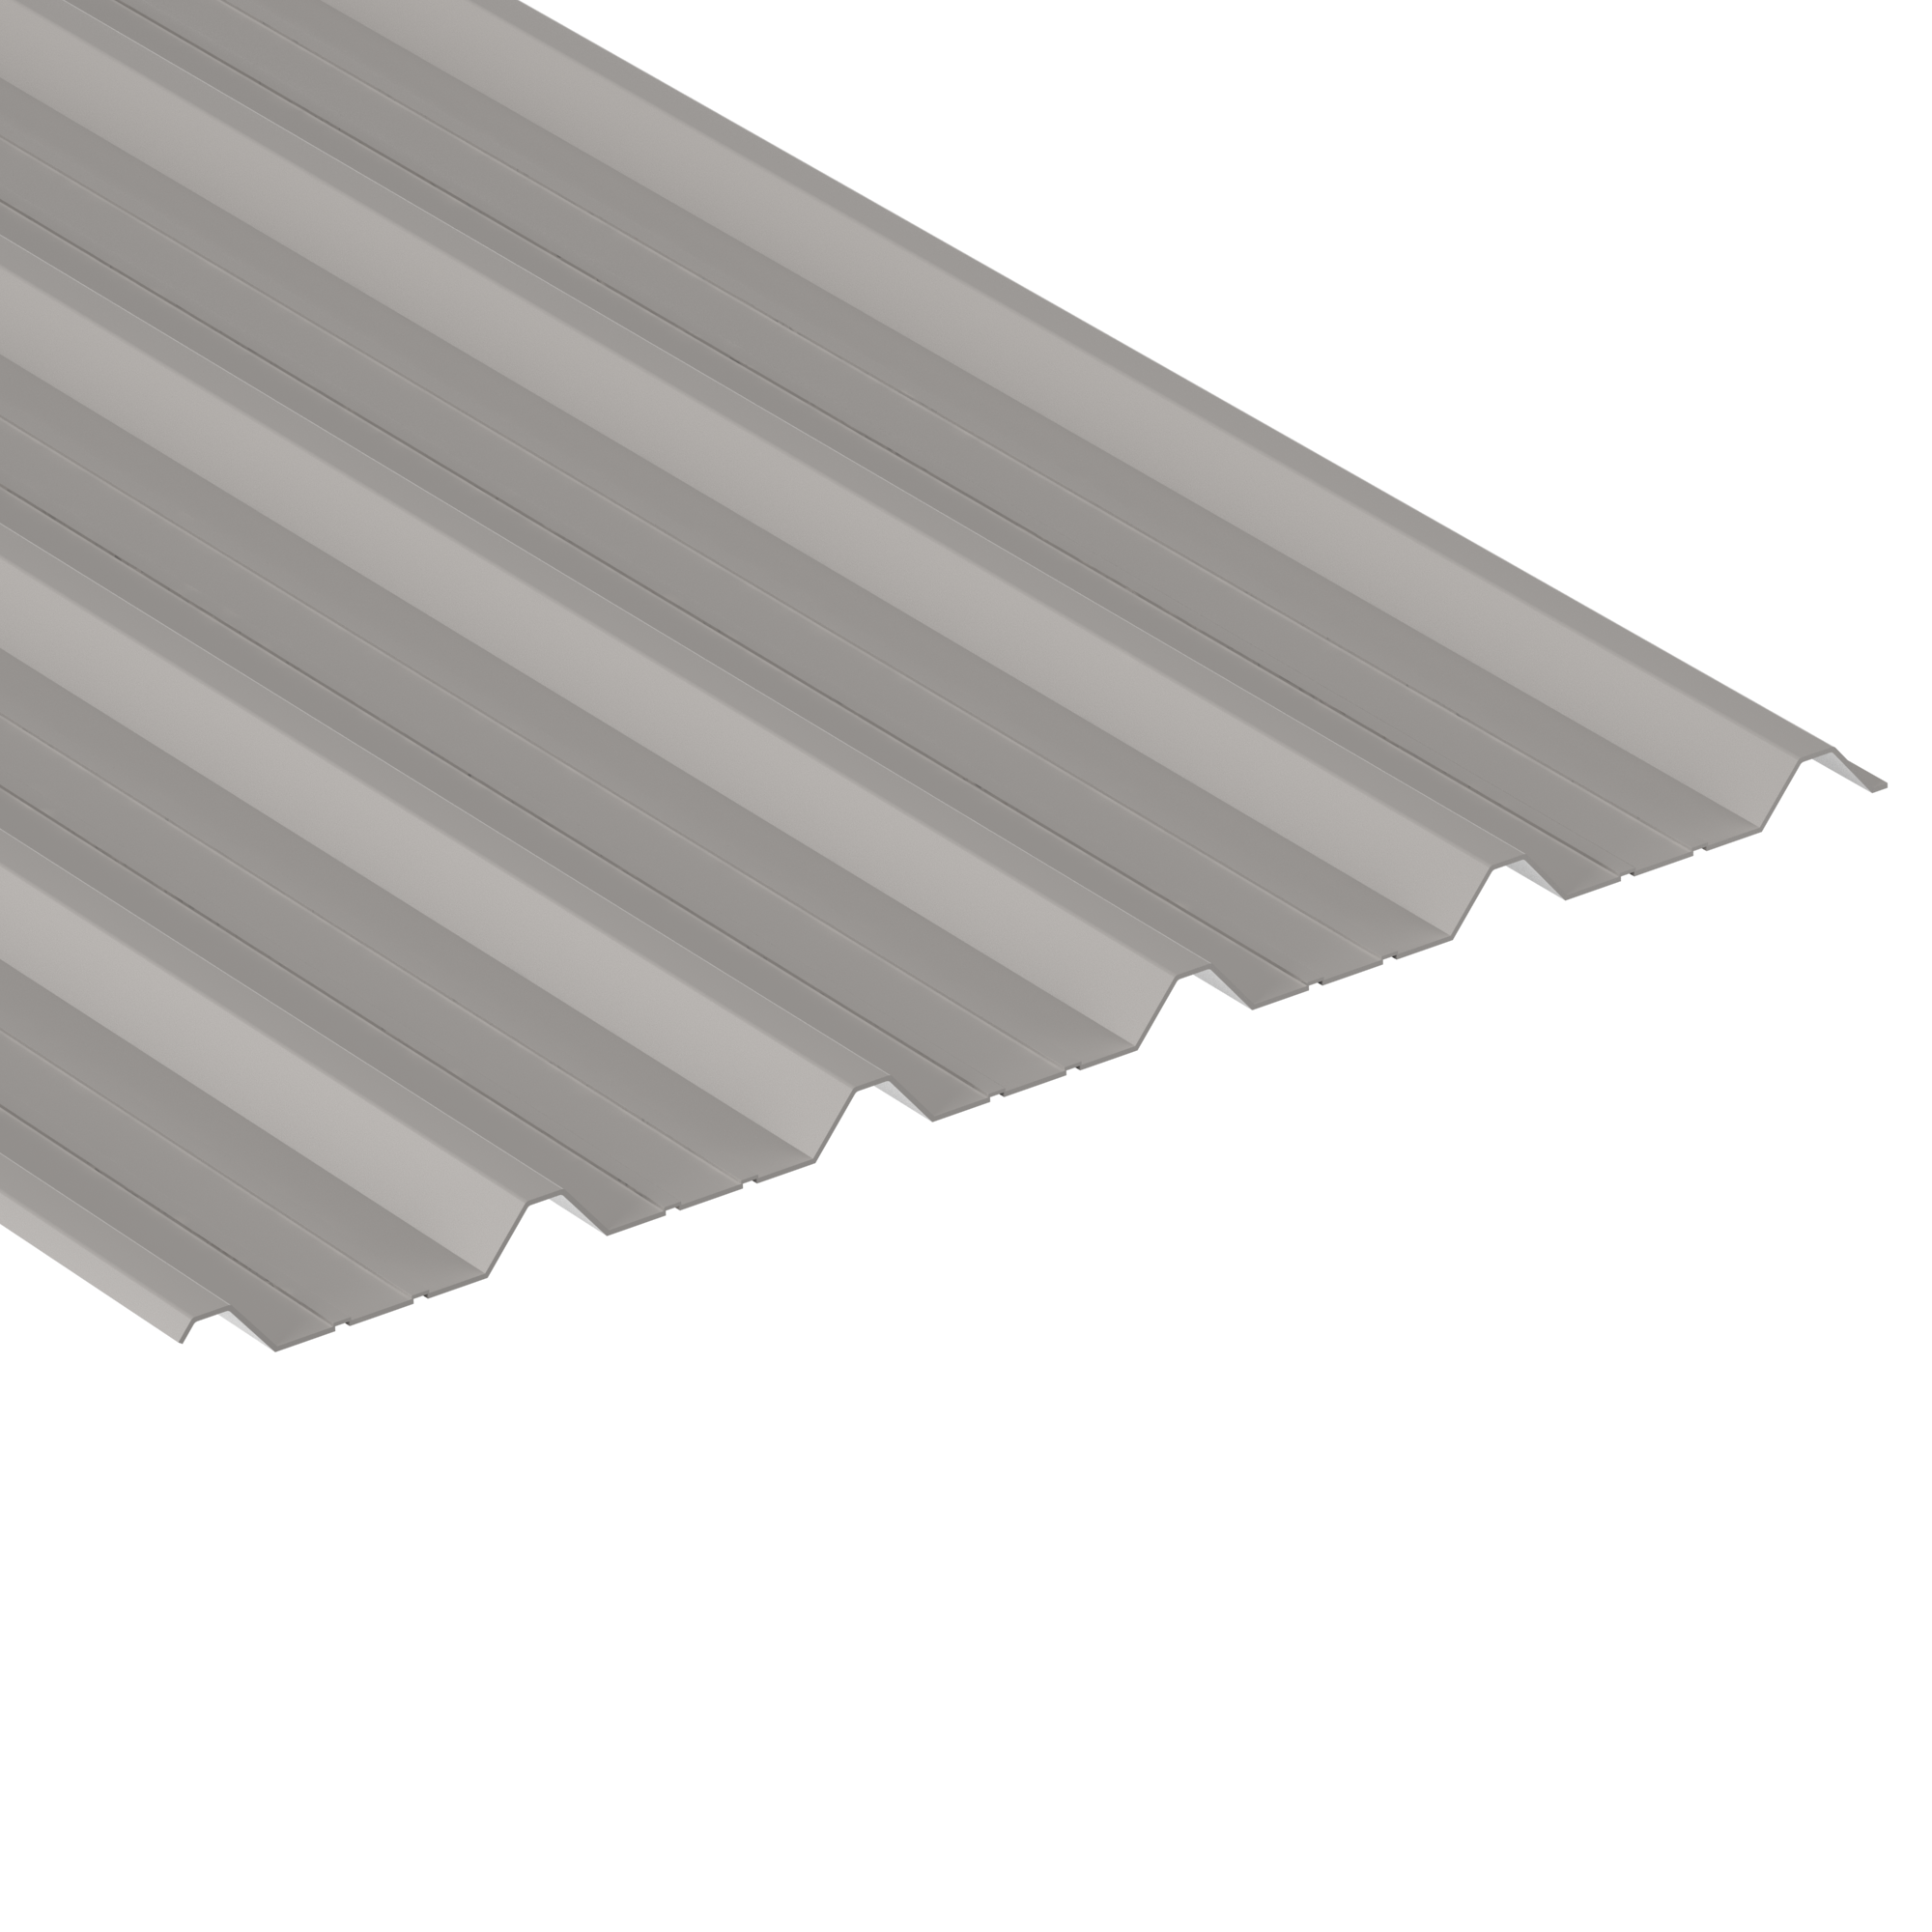 3.660m (12ft) long, 1000/32B Box Profile Steel Light Grey Alkyd Primer Finish With White Plastic Coated Underside